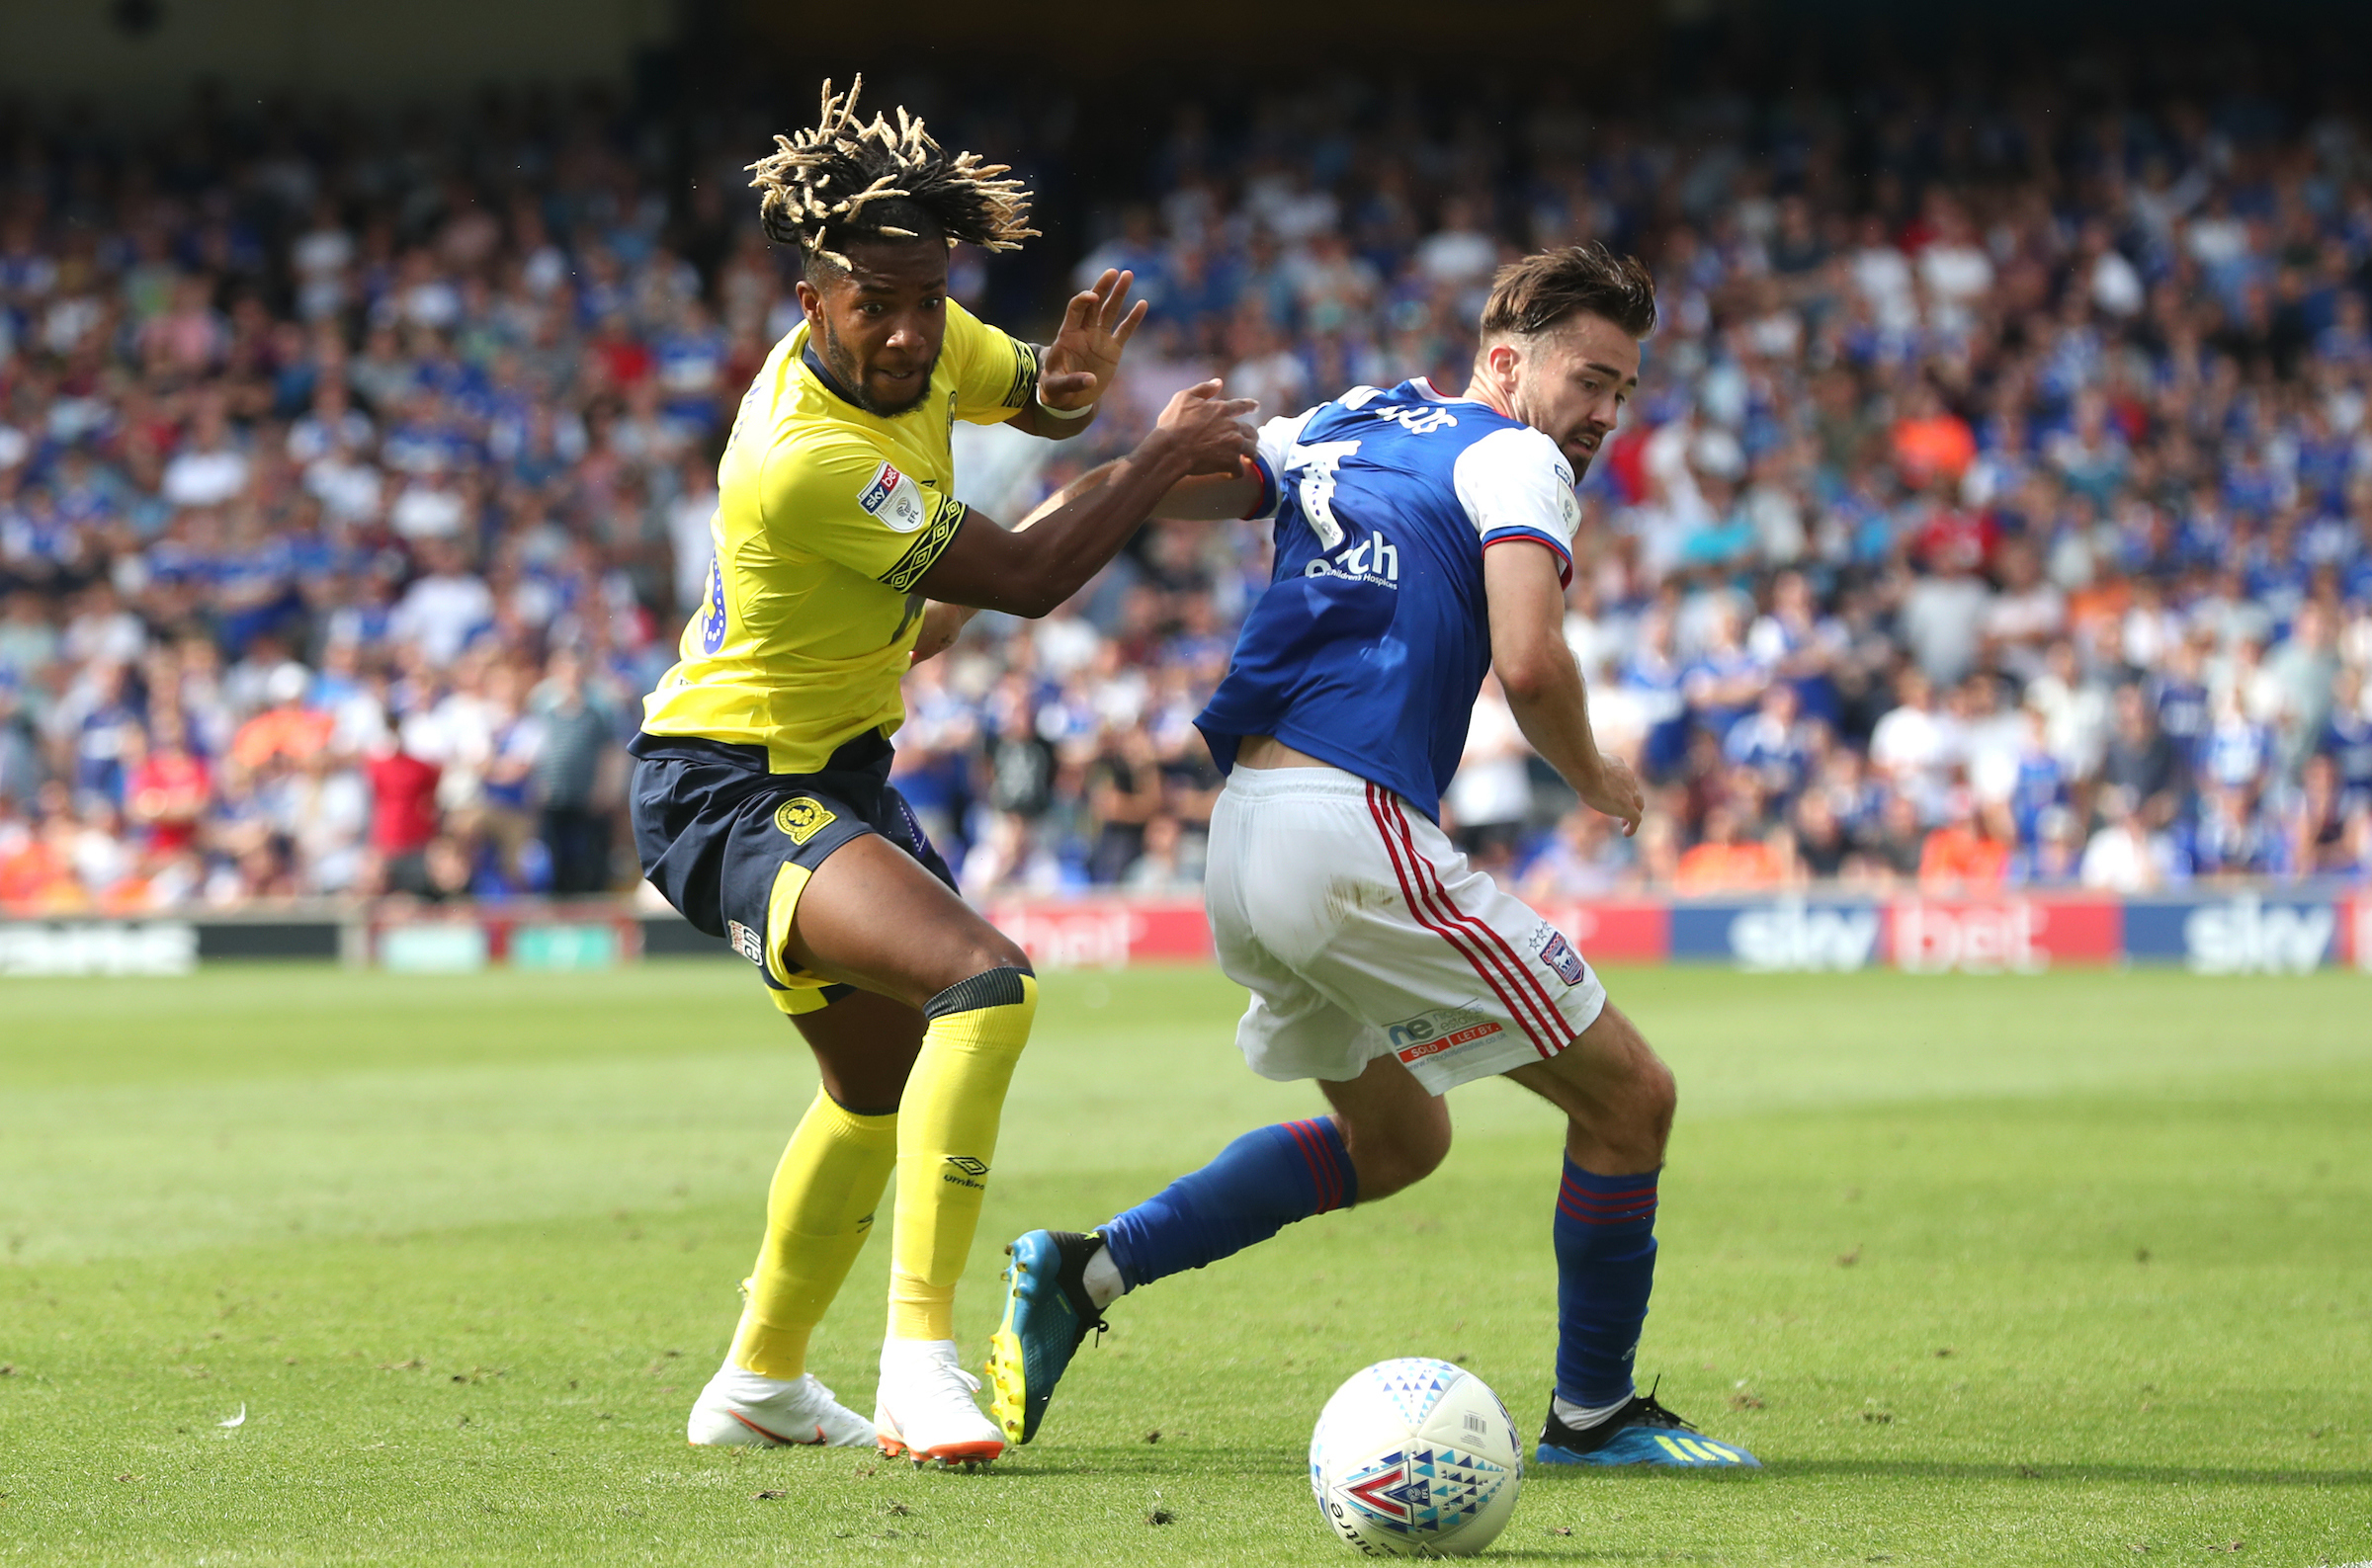 Kasey Palmer made his Rovers debut in the opening day draw at Ipswich Town